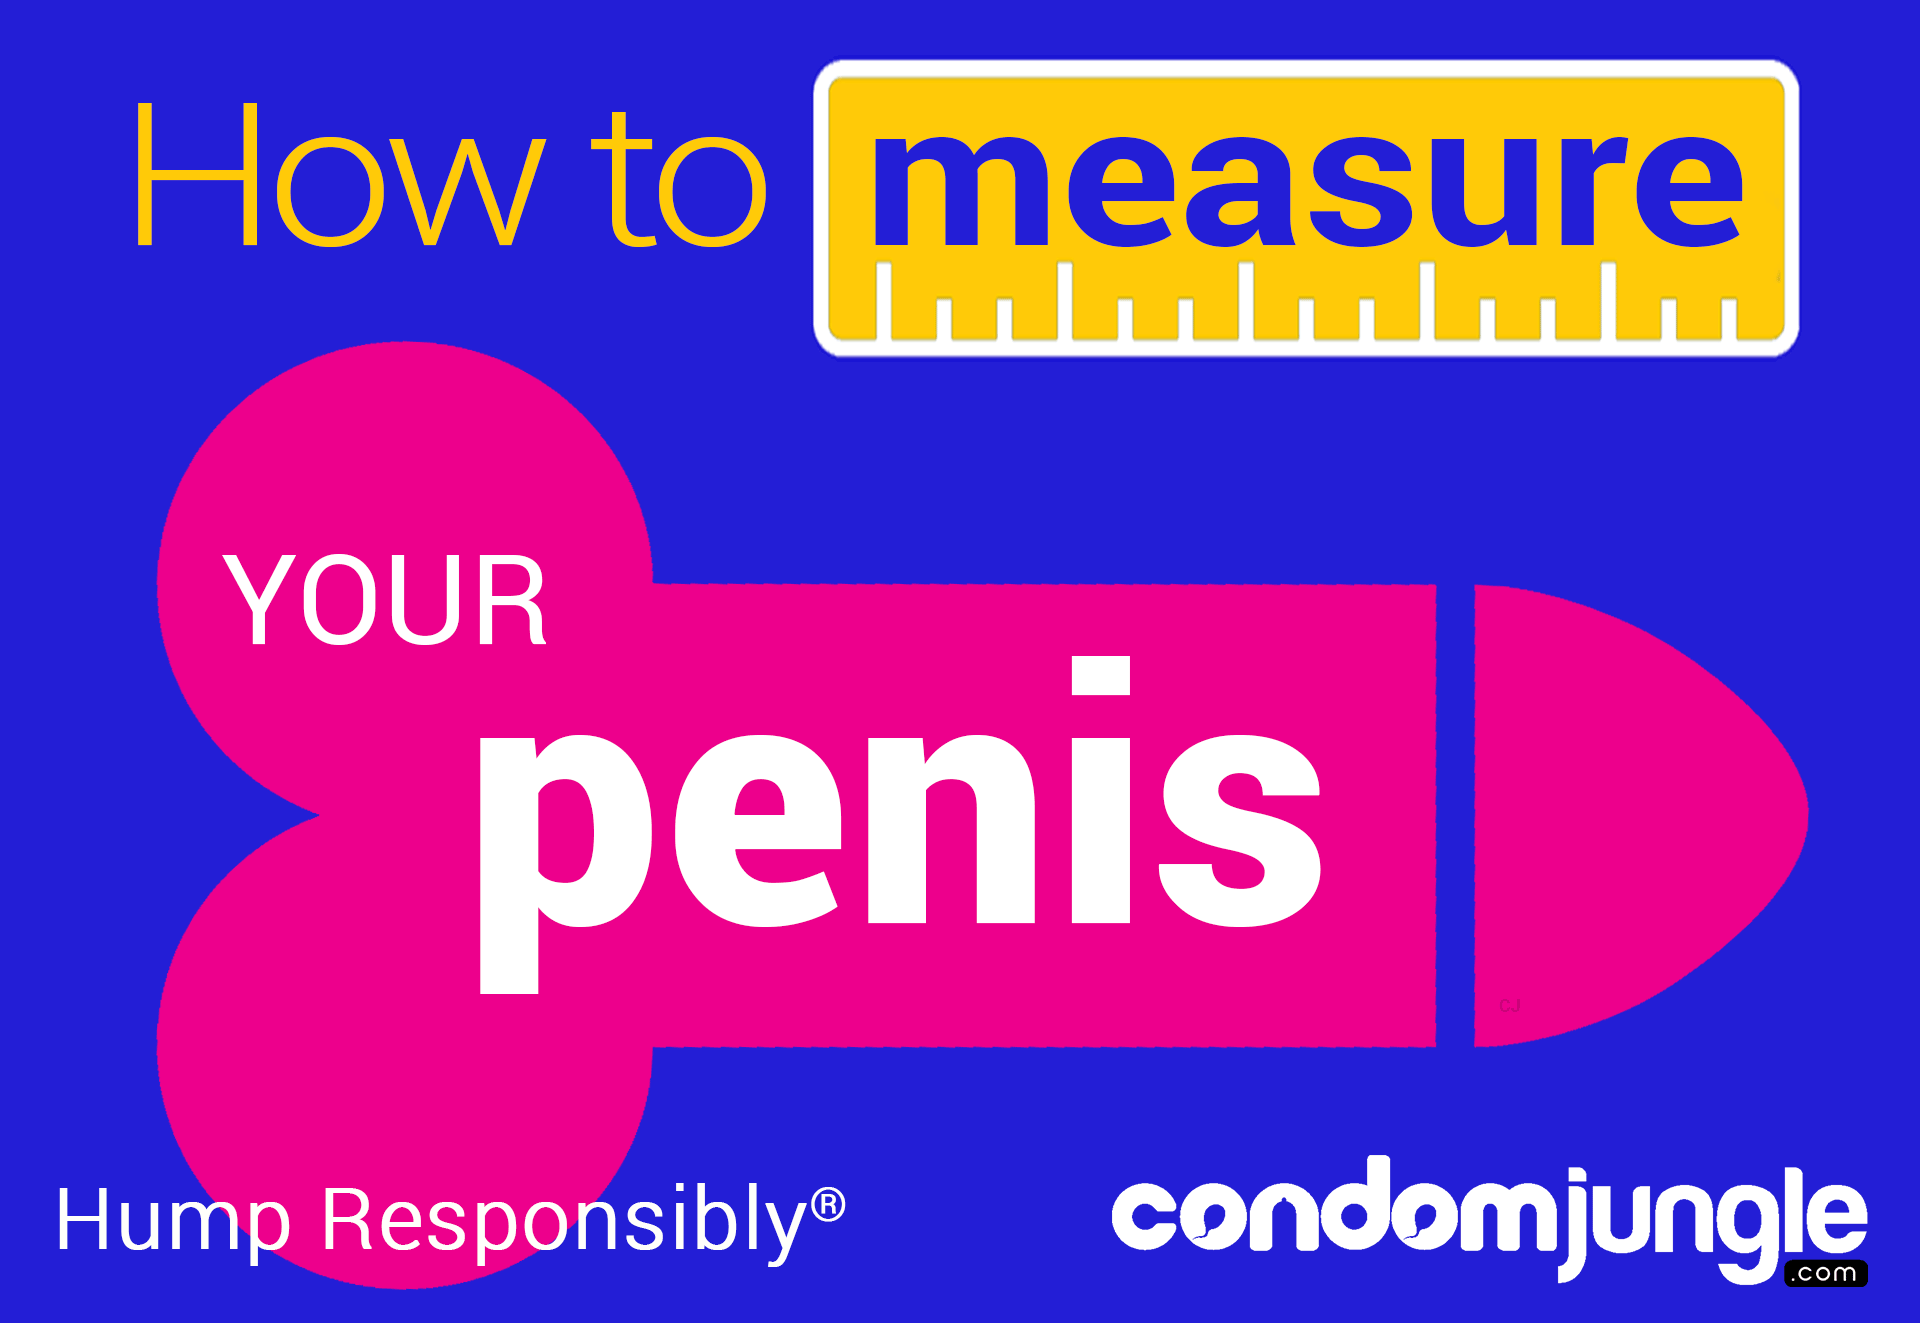 How to measure your penis size step by step guide